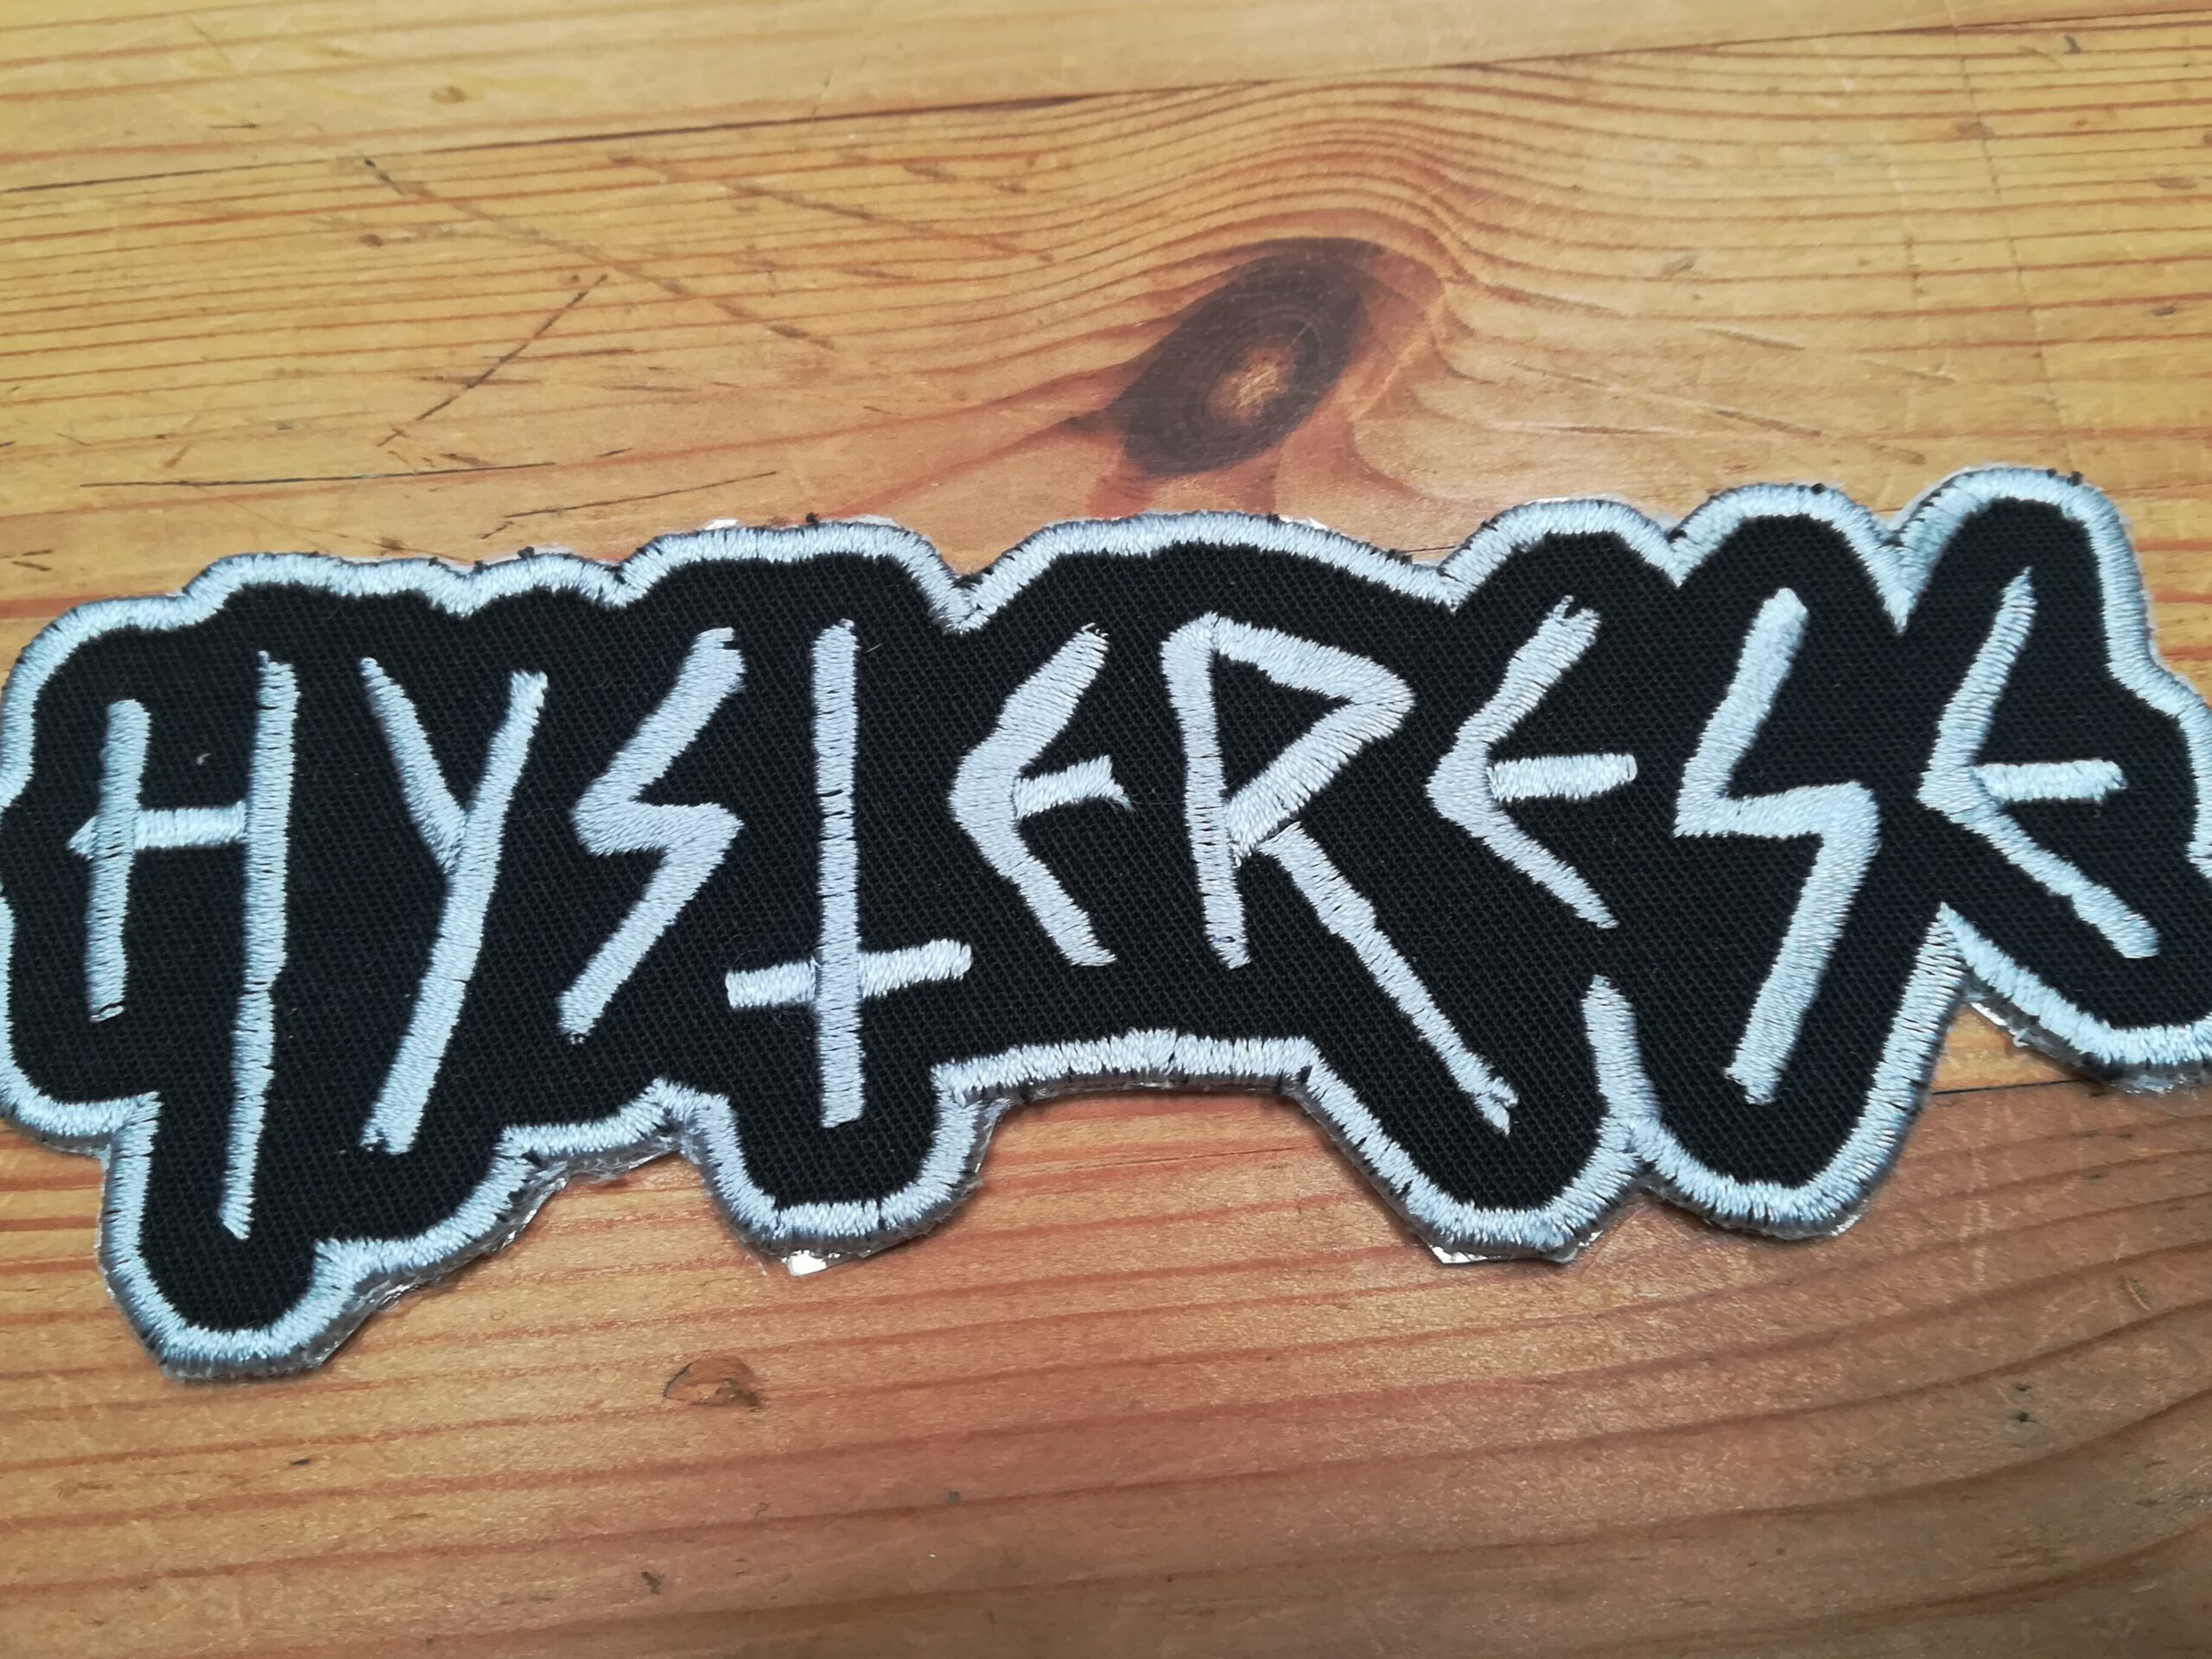 Hysterese shaped logo patch